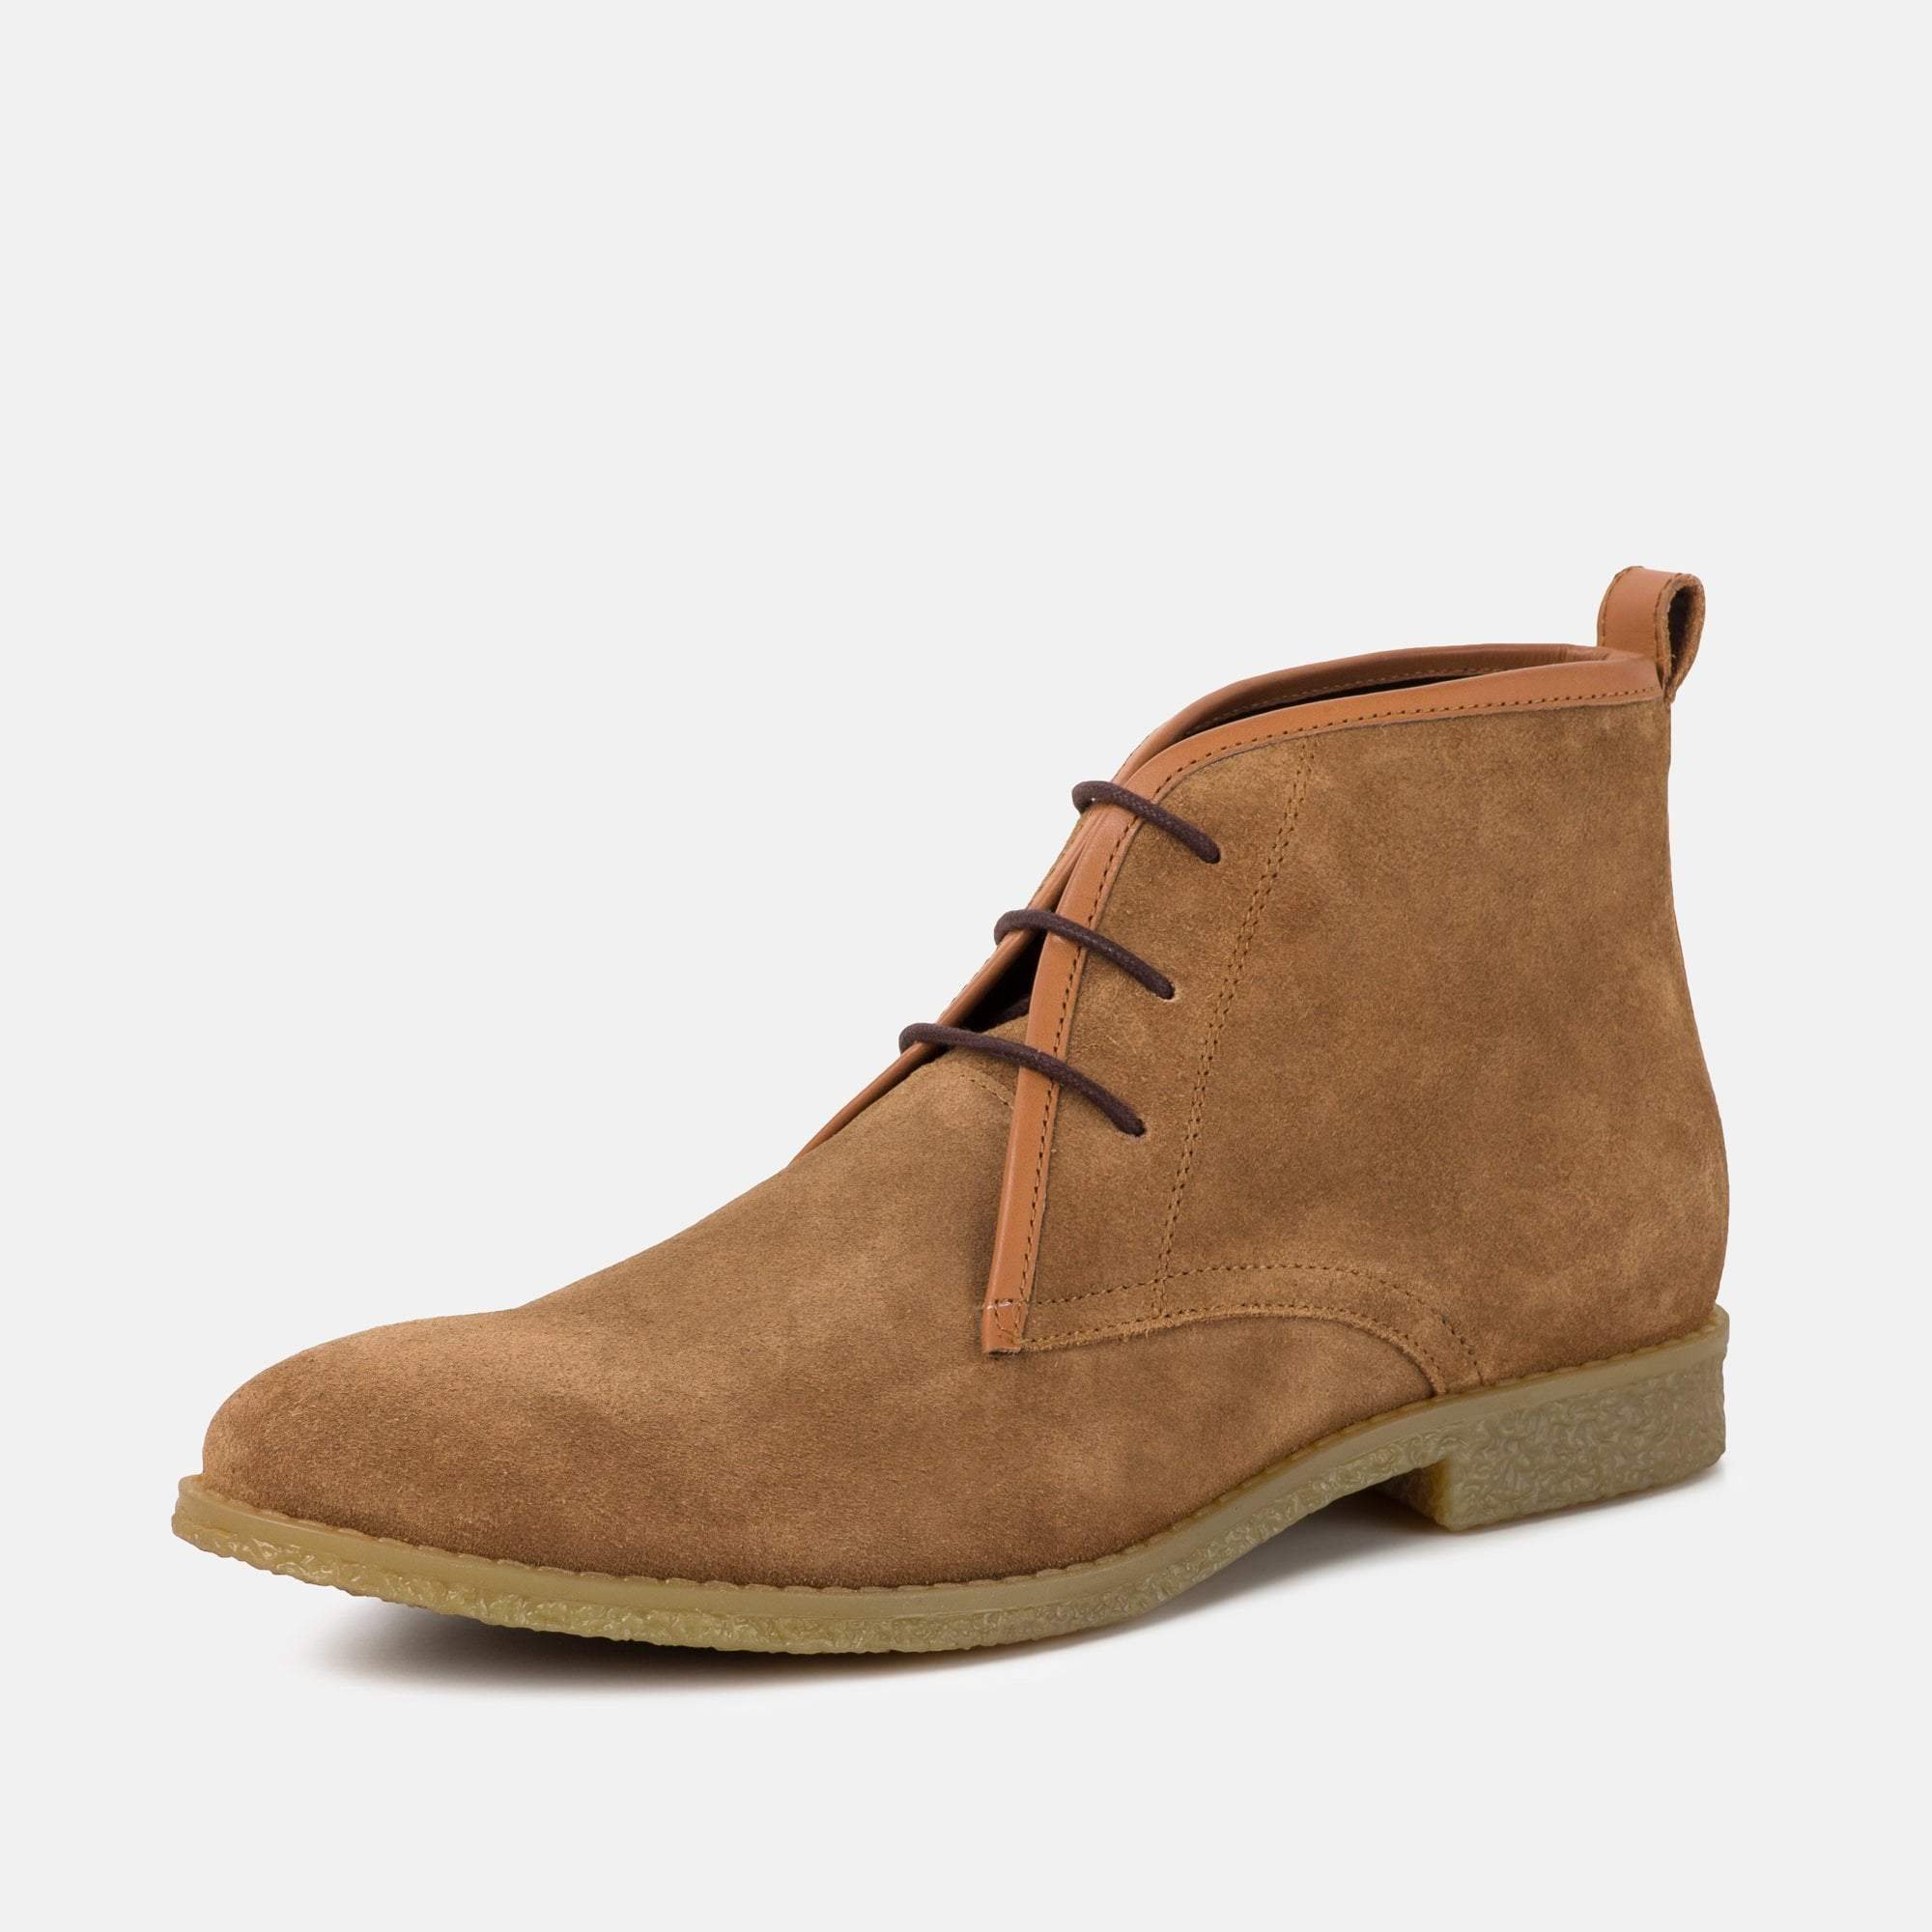 Redfoot Footwear UK 6 / EURO 39 / US 7 / Chestnut / Suede JACKSON CHESTNUT